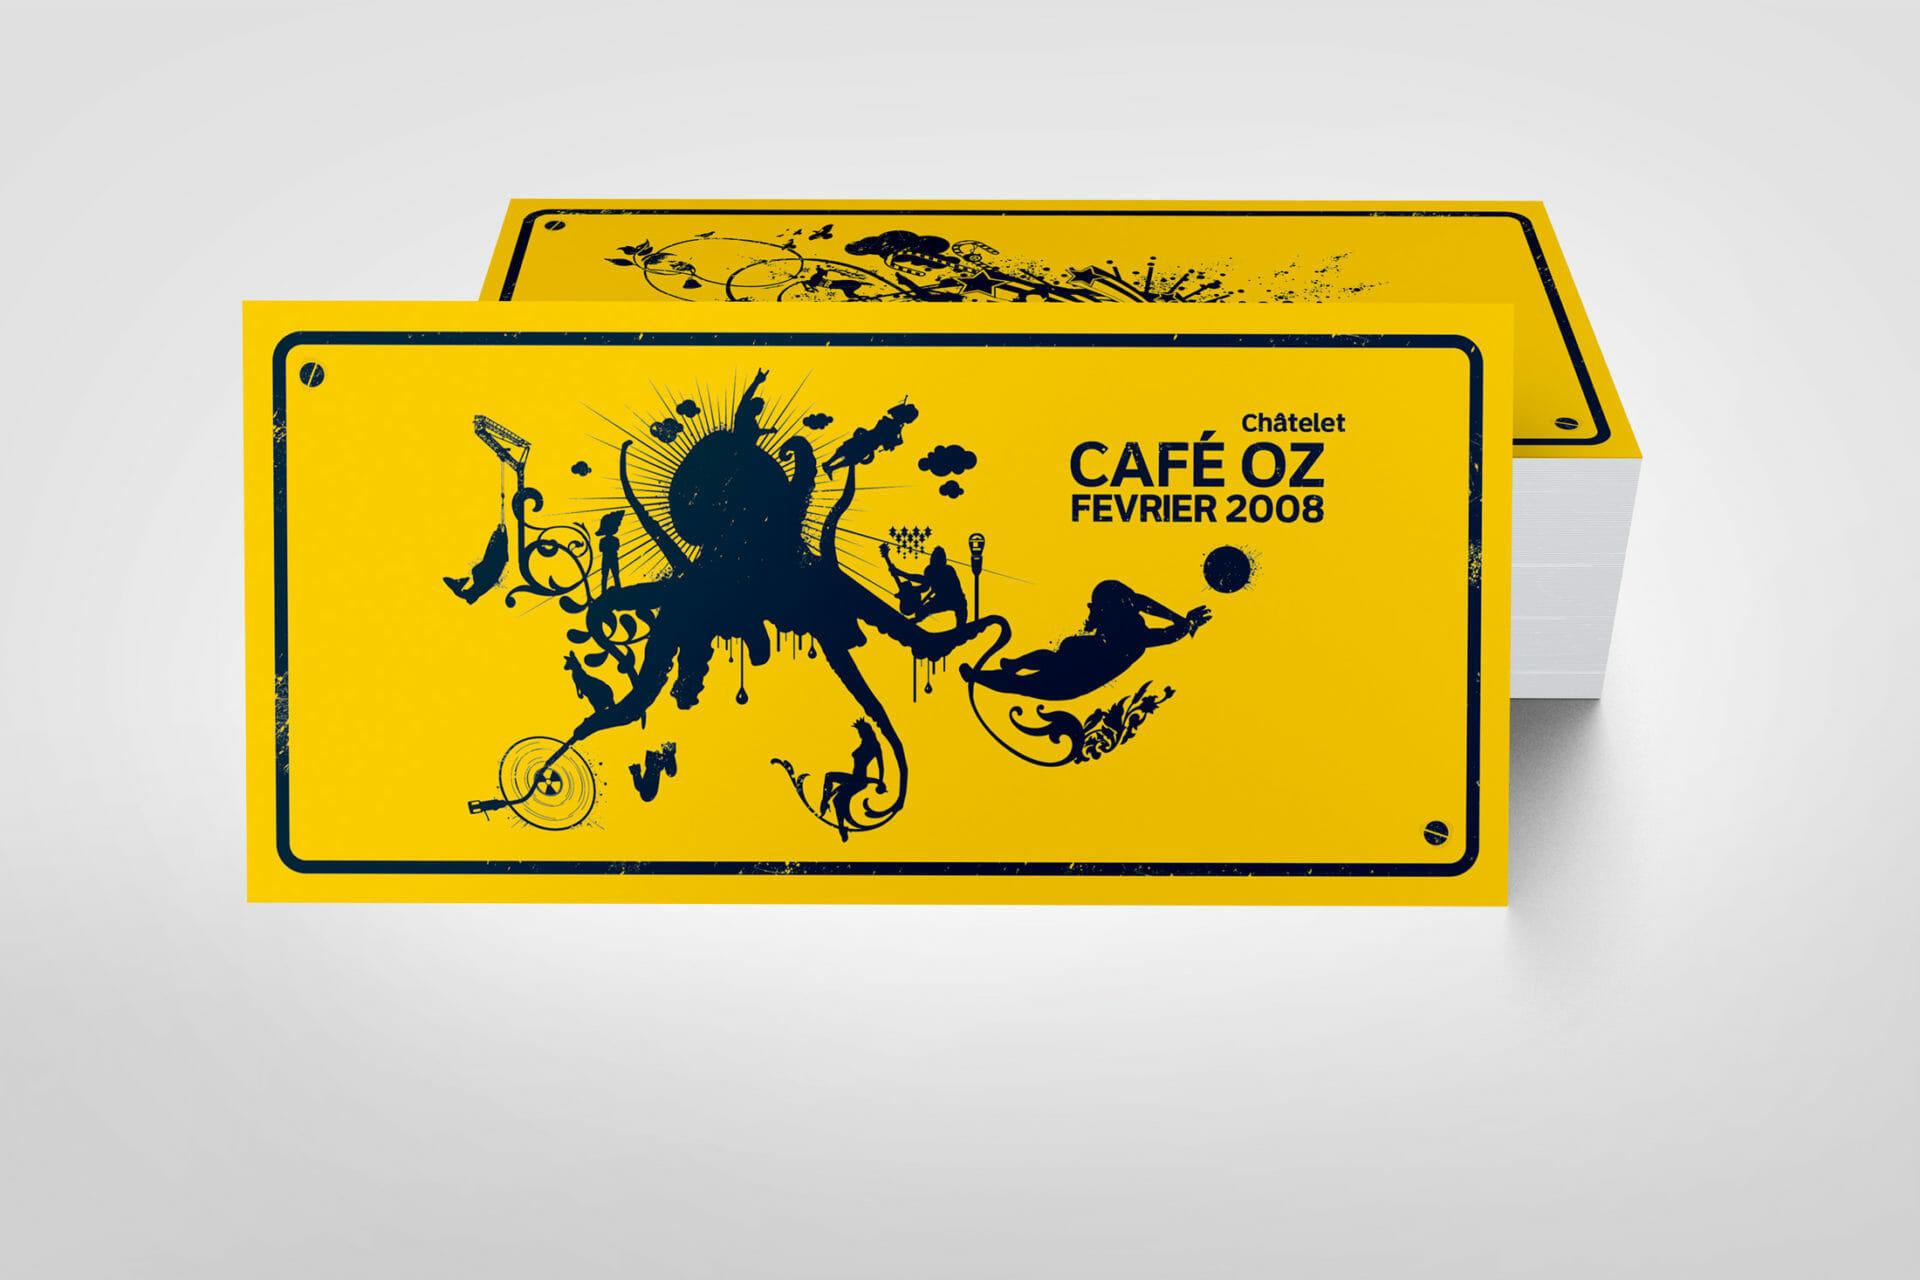 CafeOz-Chatelet-01